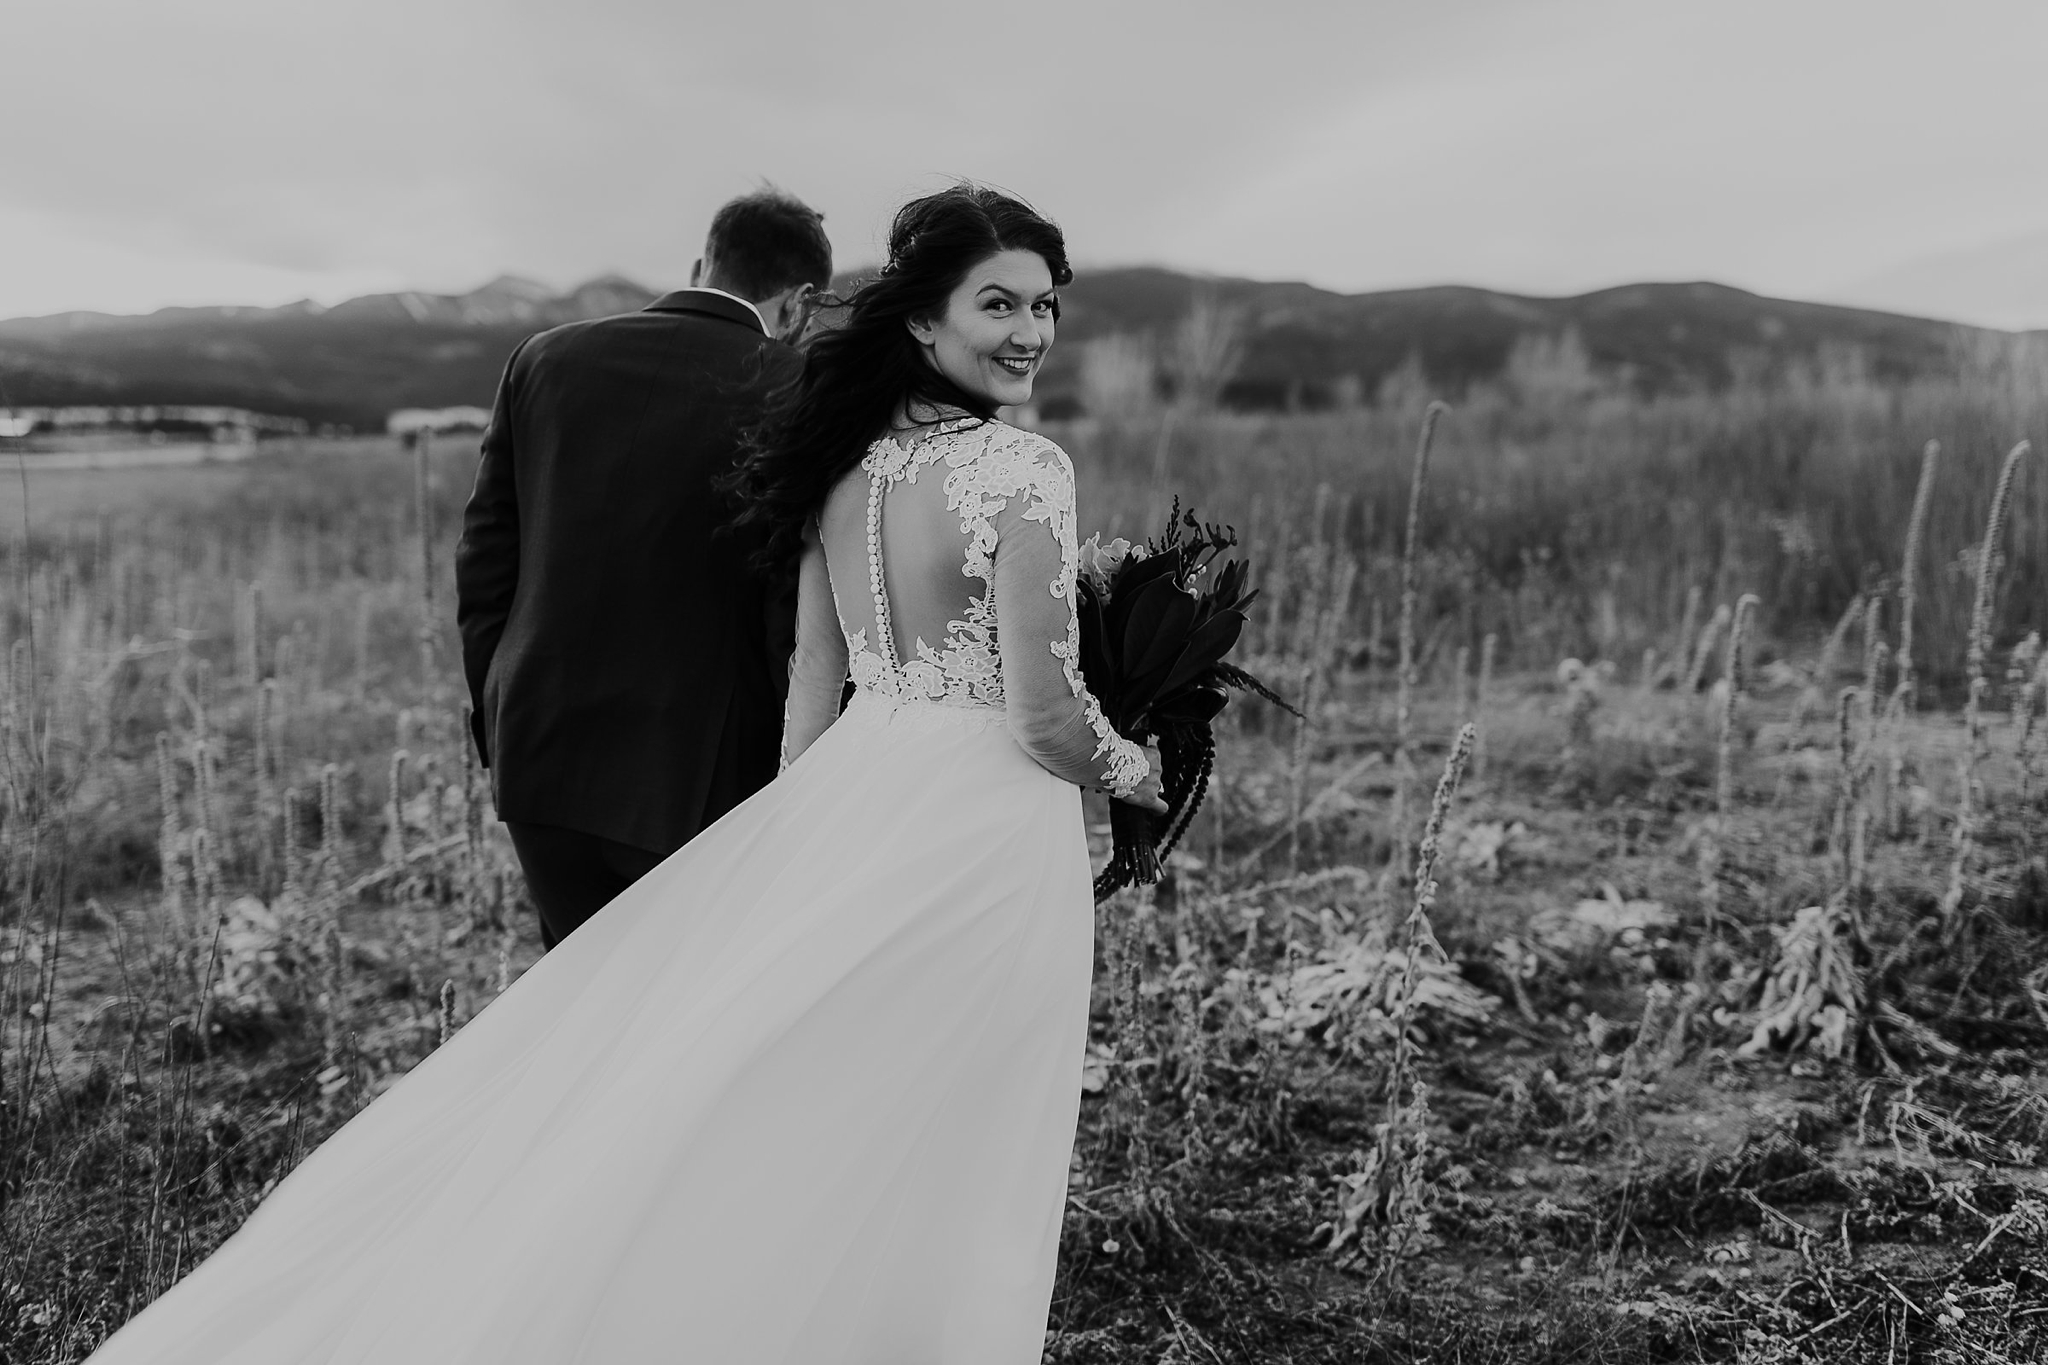 Alicia+lucia+photography+-+albuquerque+wedding+photographer+-+santa+fe+wedding+photography+-+new+mexico+wedding+photographer+-+new+mexico+wedding+-+wedding+gowns+-+bridal+gowns+-+a+line+wedding+gown_0014.jpg